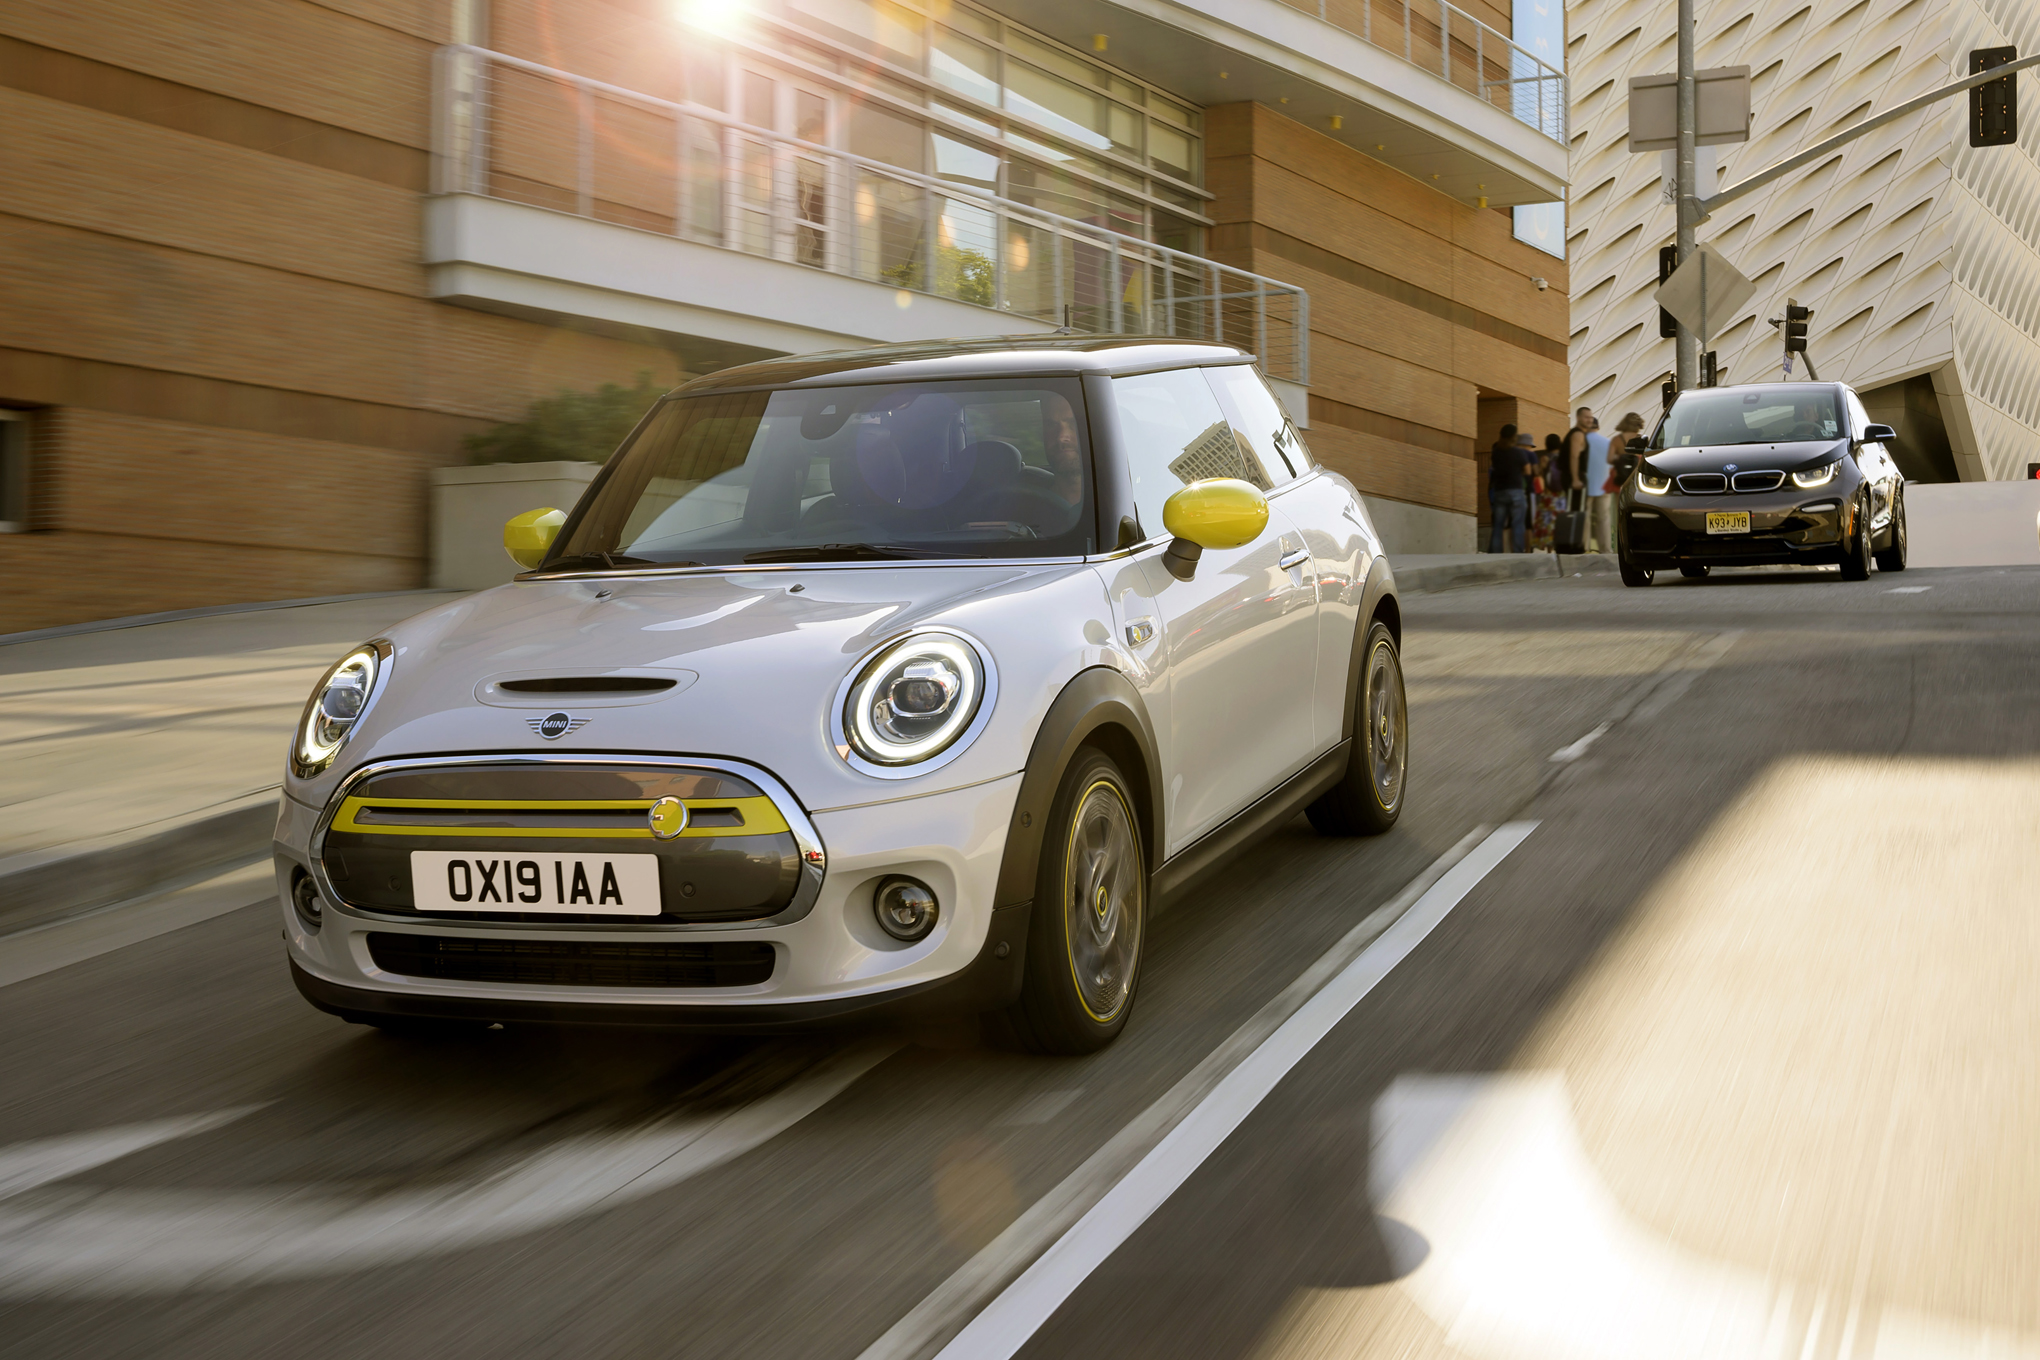 The first electric Mini helps explain why BMW's CEO just quit - The